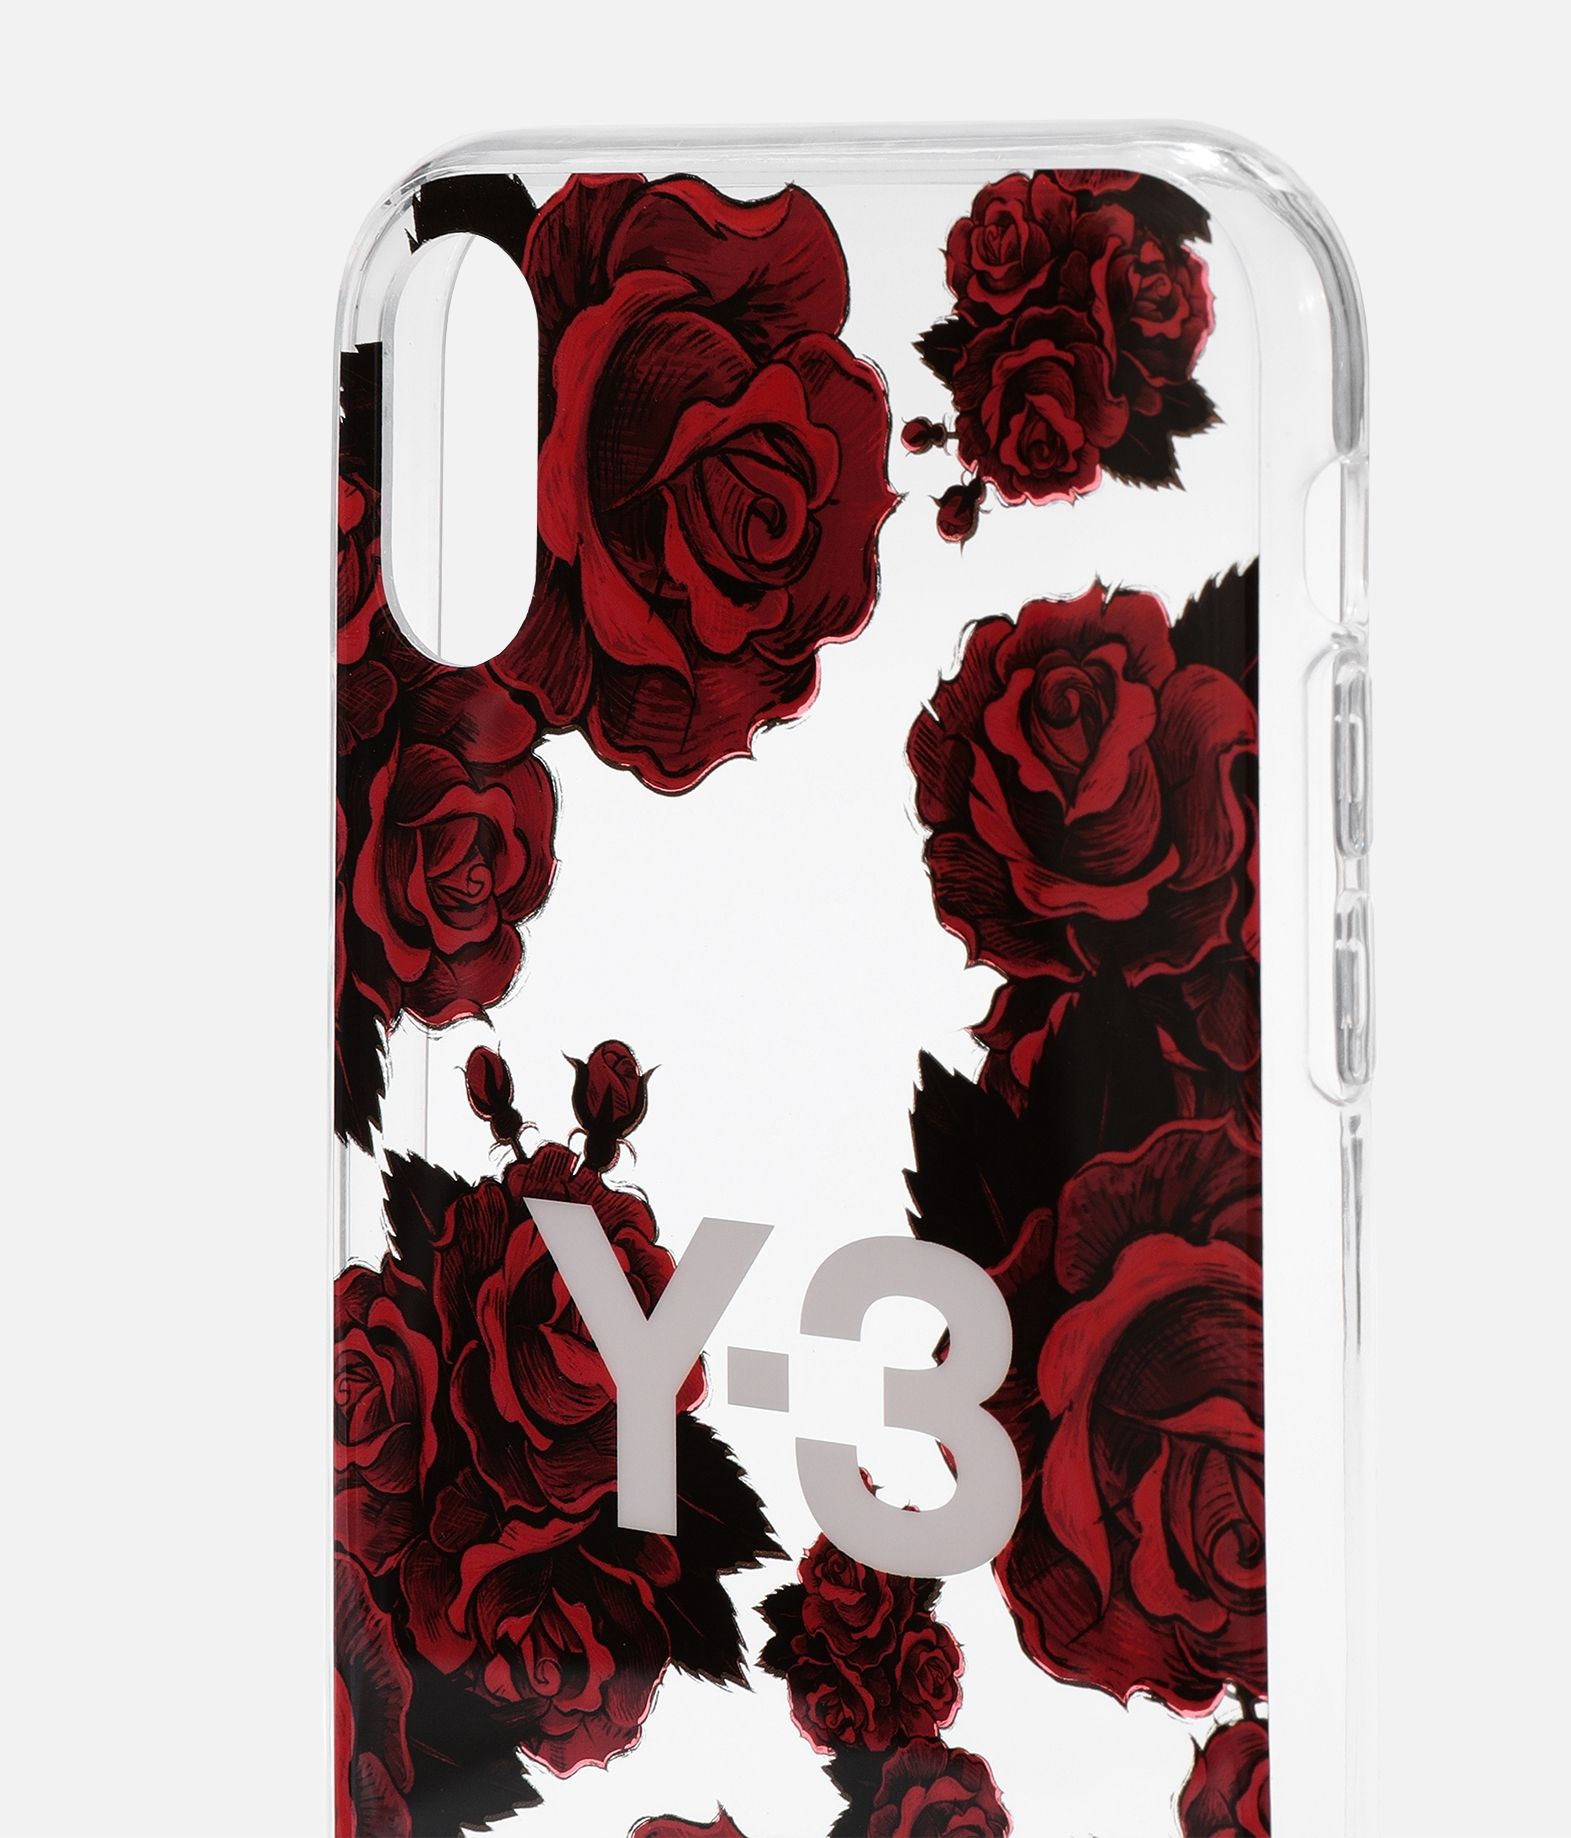 Y-3 Y-3 Snap Case Flower Graphic iPhone 6.1  Portacellulare E d